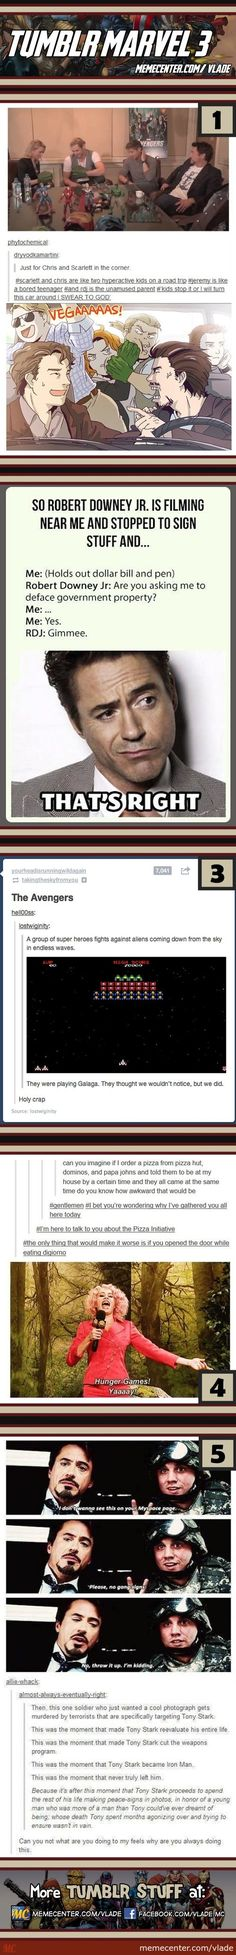 Tumblr Marvel #3  #5.... The feels.....